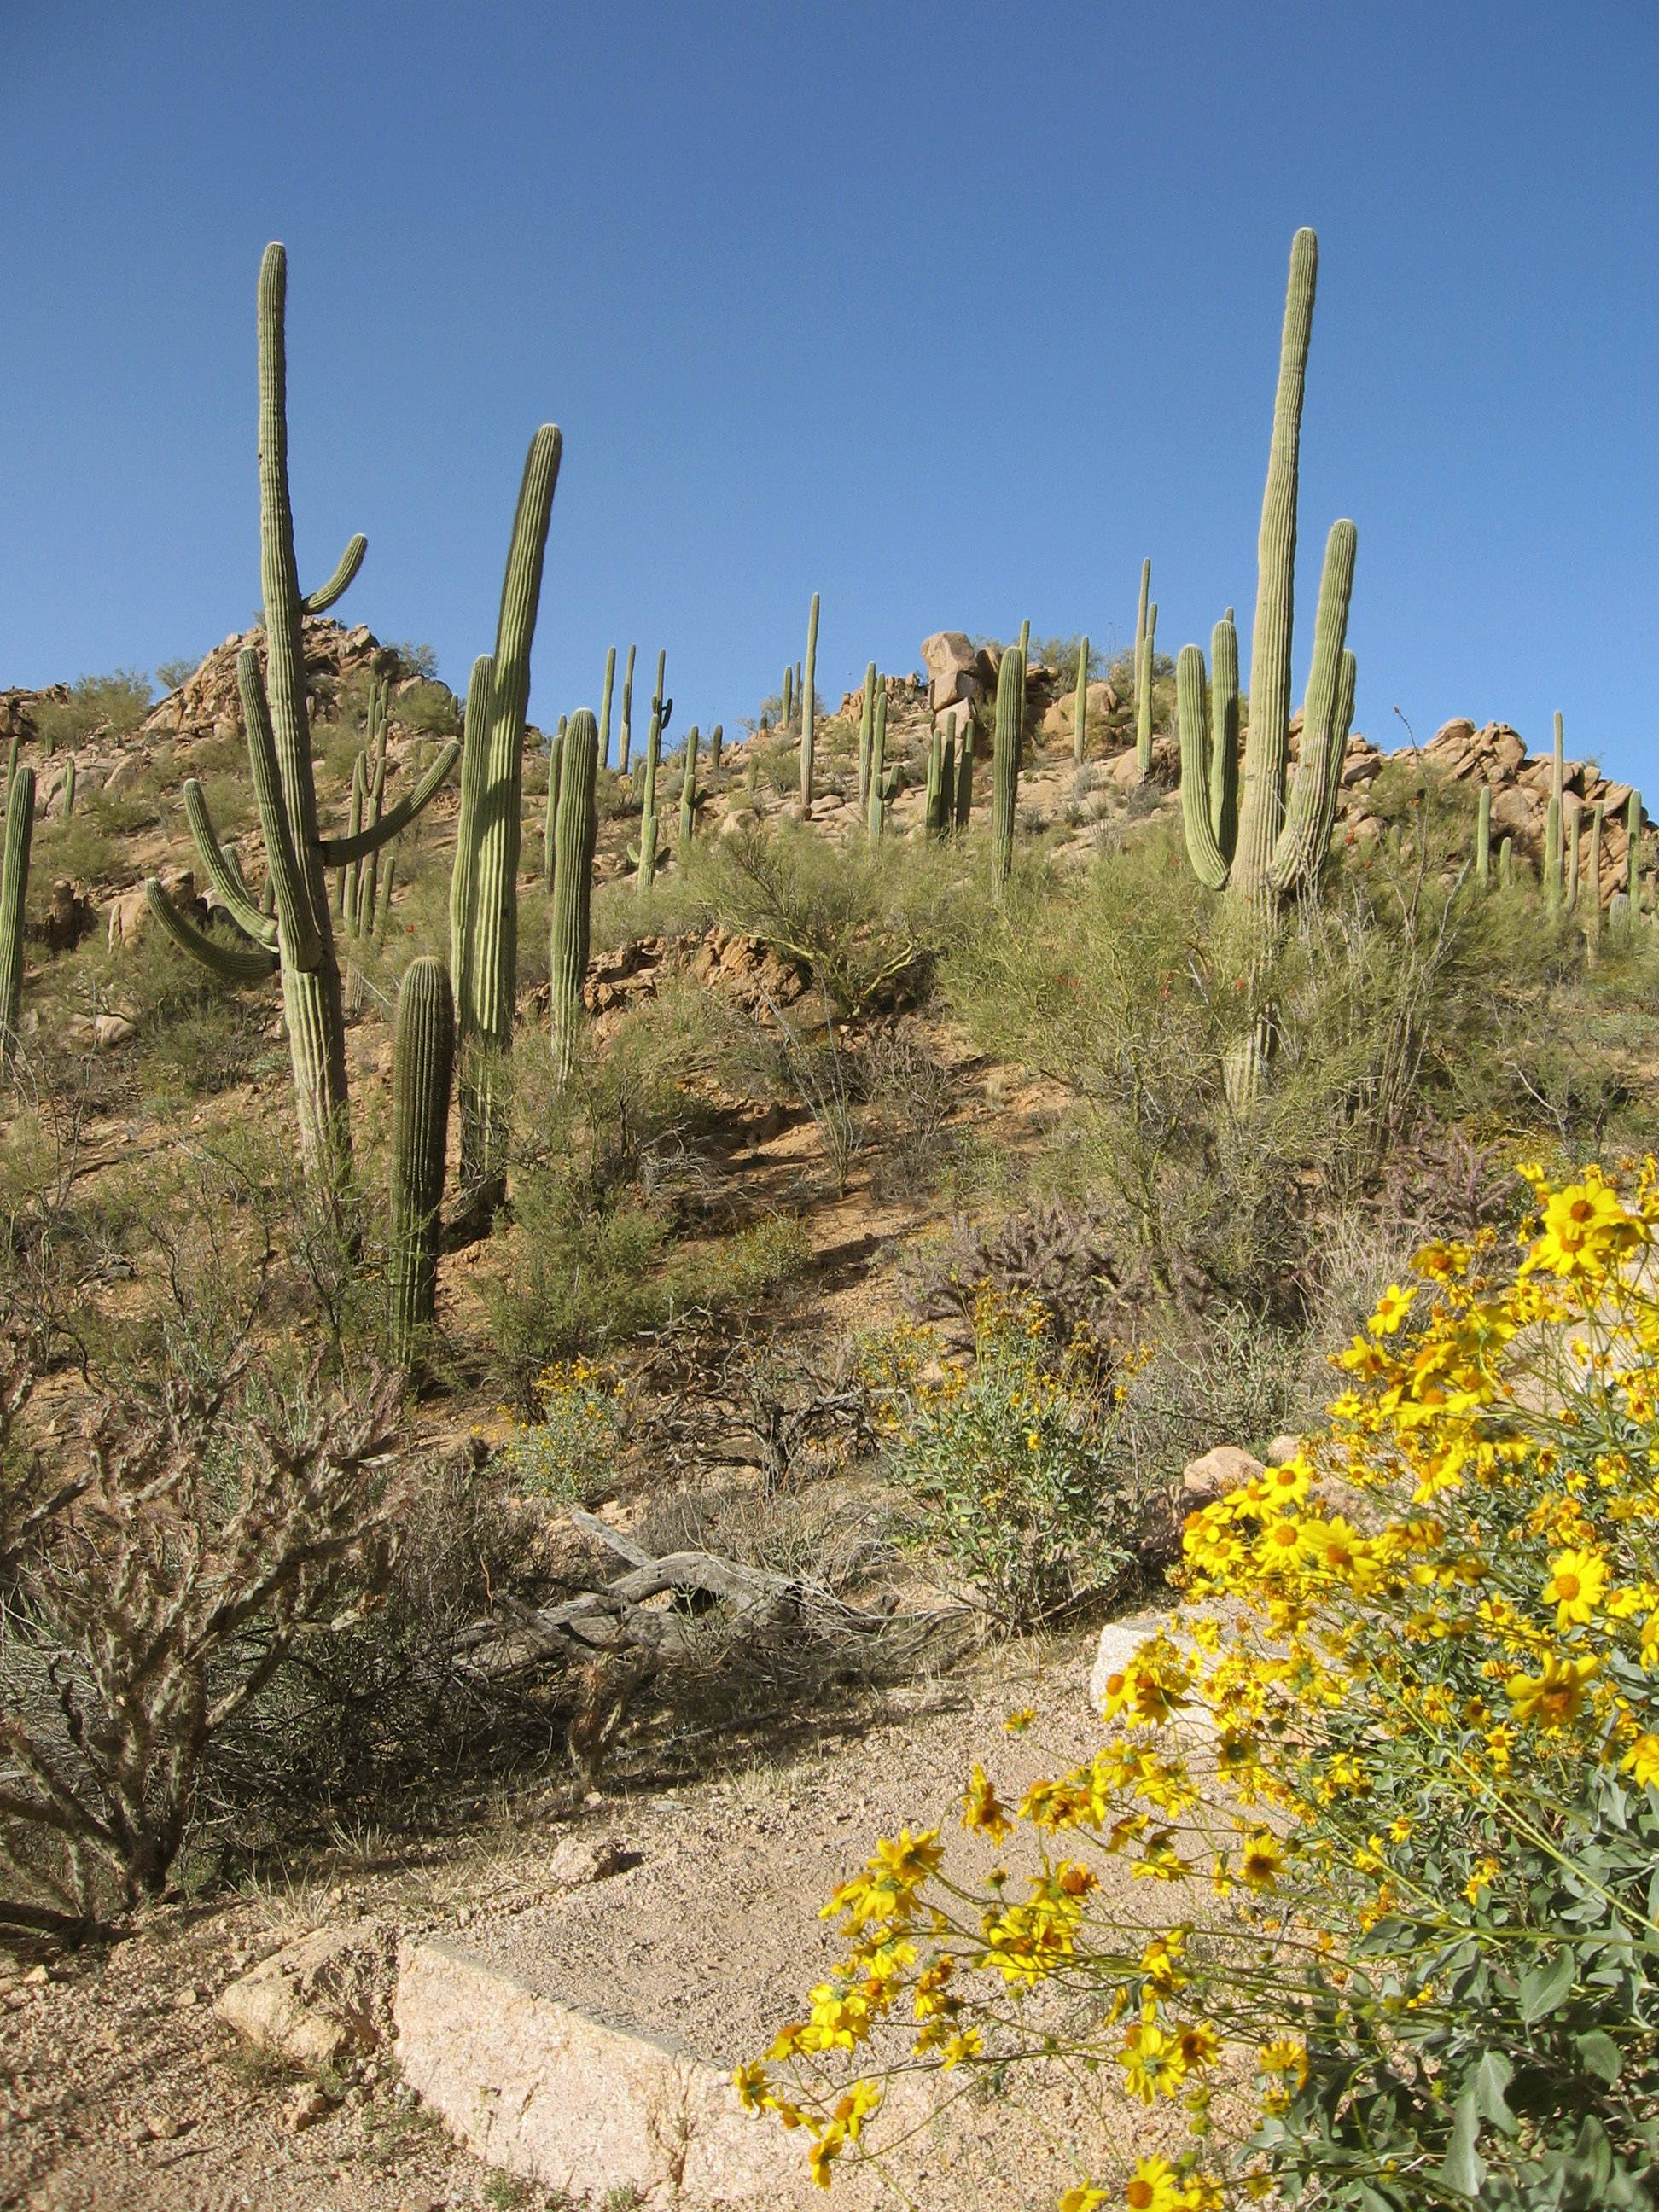 Cactuses and spring flowers await hikers on the Norris Trail of Saguaro National Park in Arizona. The park, divided into two districts with the city of Tucson in between them, offers hikers sunny, peaceful trails.